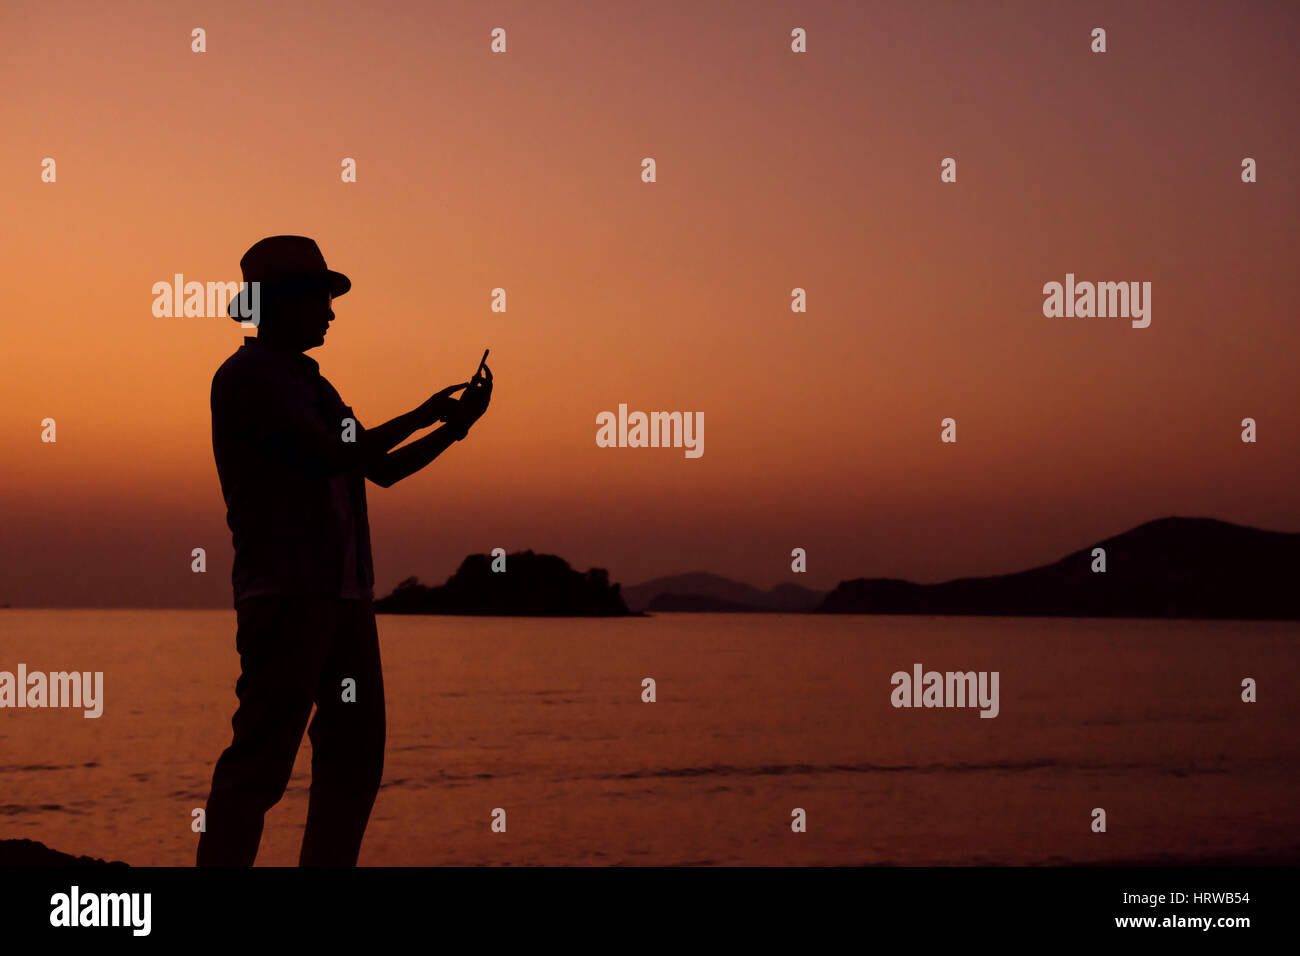 Silhouette of human using smart phone in Sunset at Beach, always connected concept - Stock Image